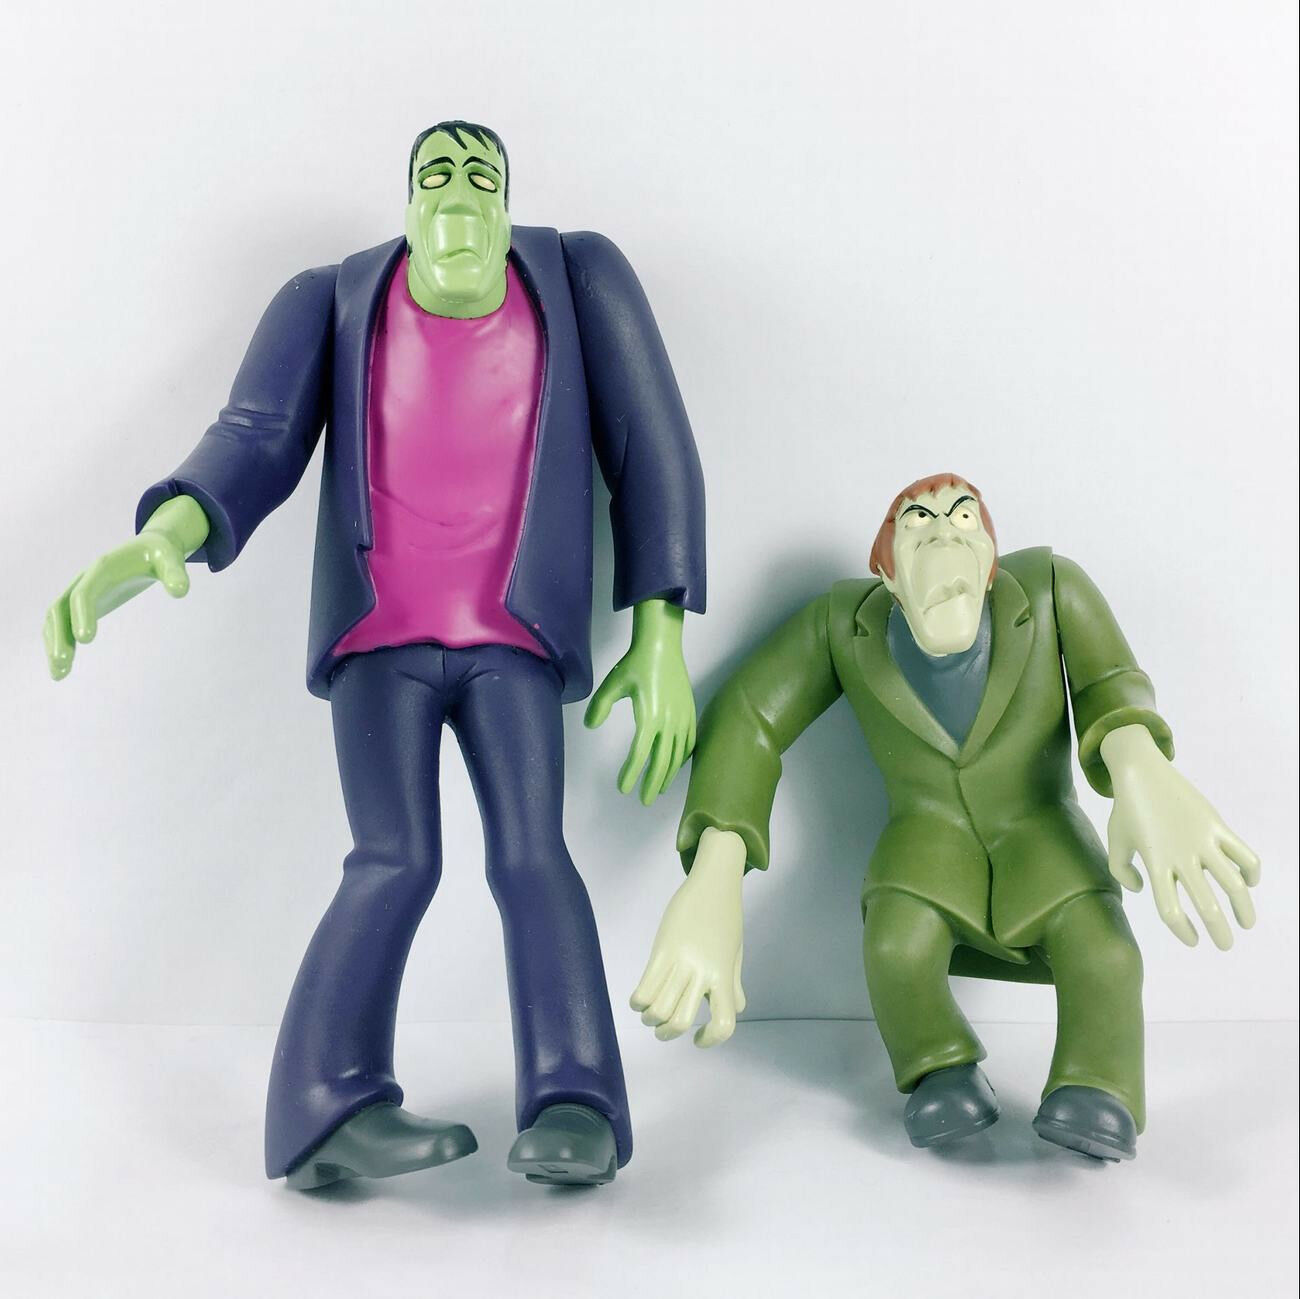 5/'/' Hanna Barbera Scooby-Doo Scooby Doo The Wolfman Action Figure Toy